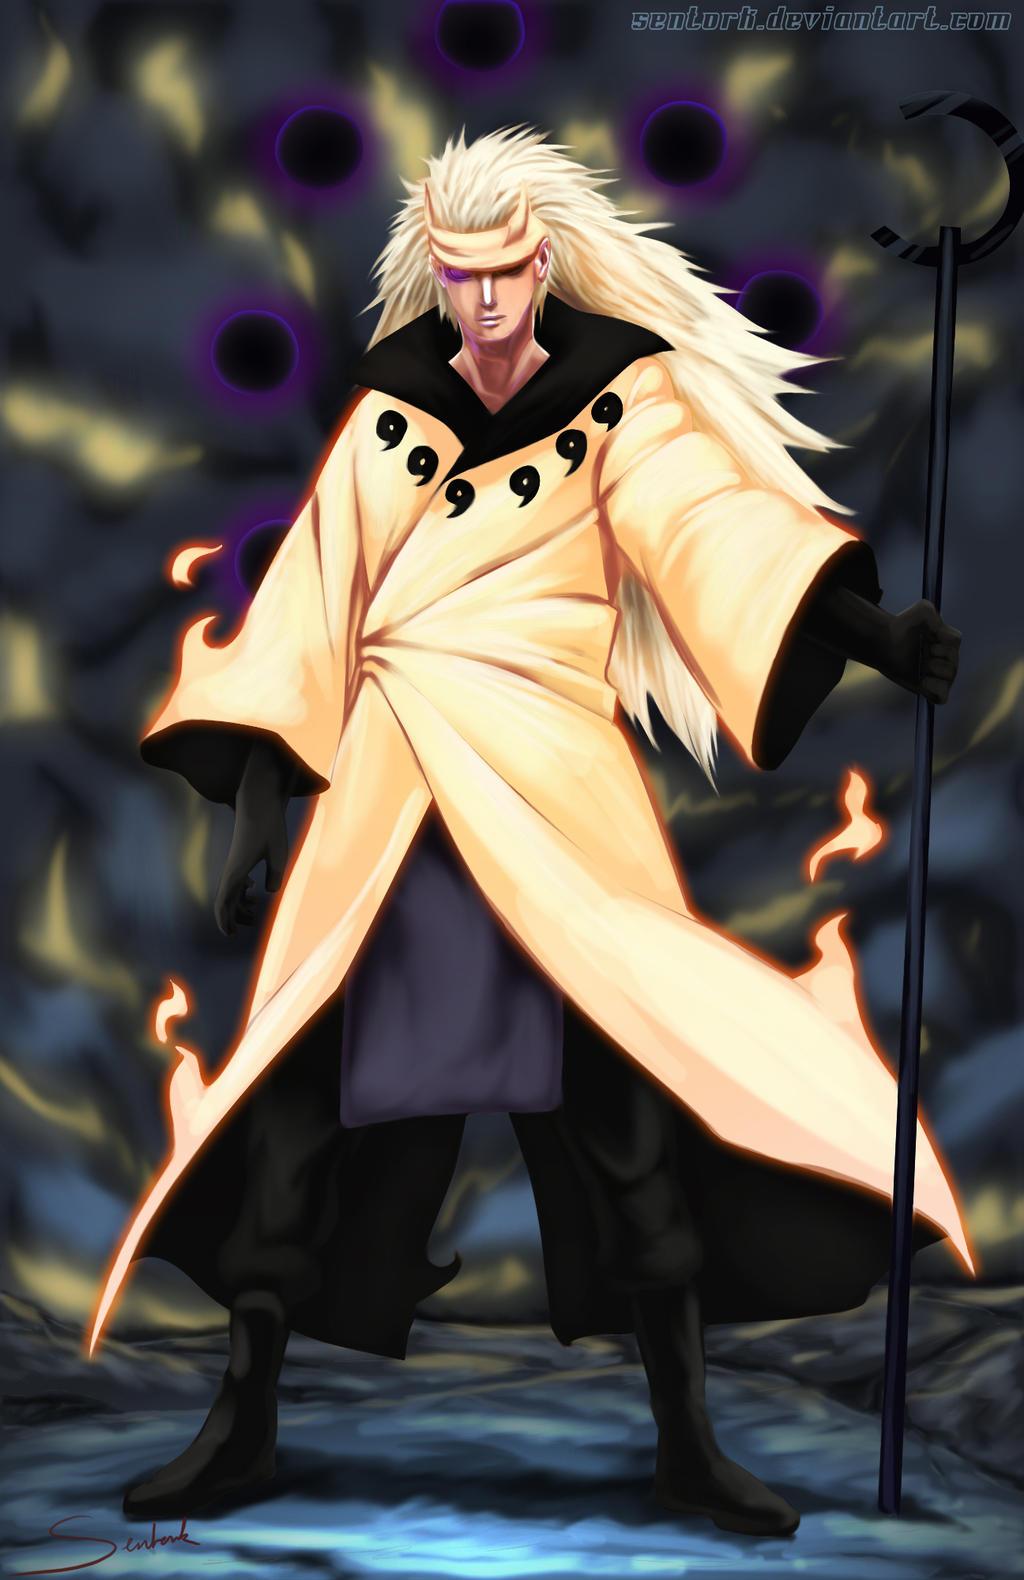 Madara The power of the six paths by Sentork on DeviantArt